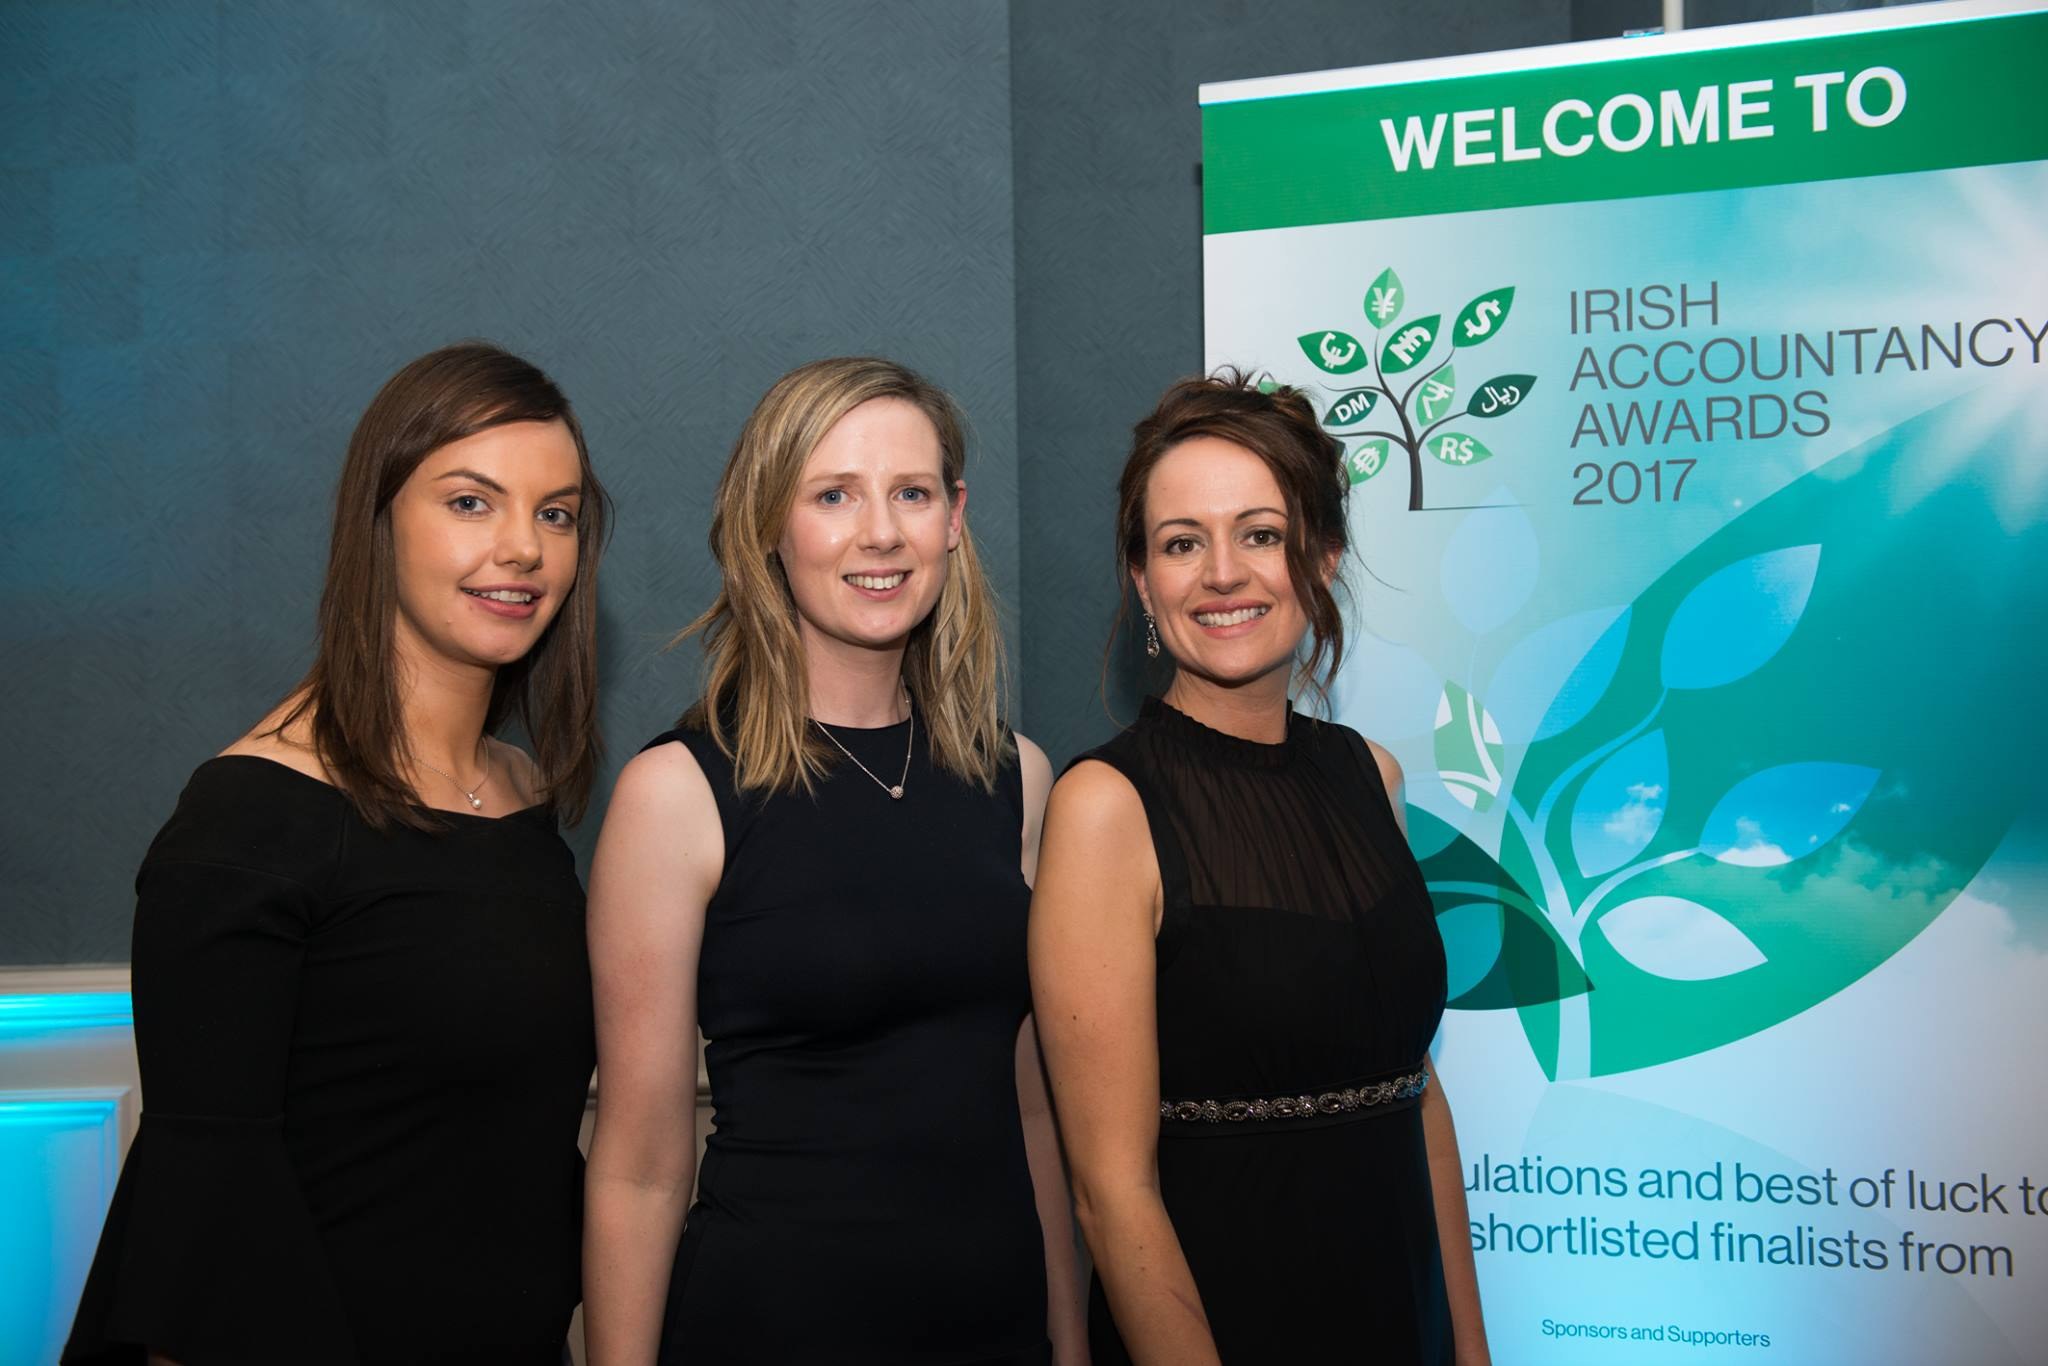 Angela O'Leary and AG Associates, Small Practice of the Year Finalist at Irish Accountancy Awards